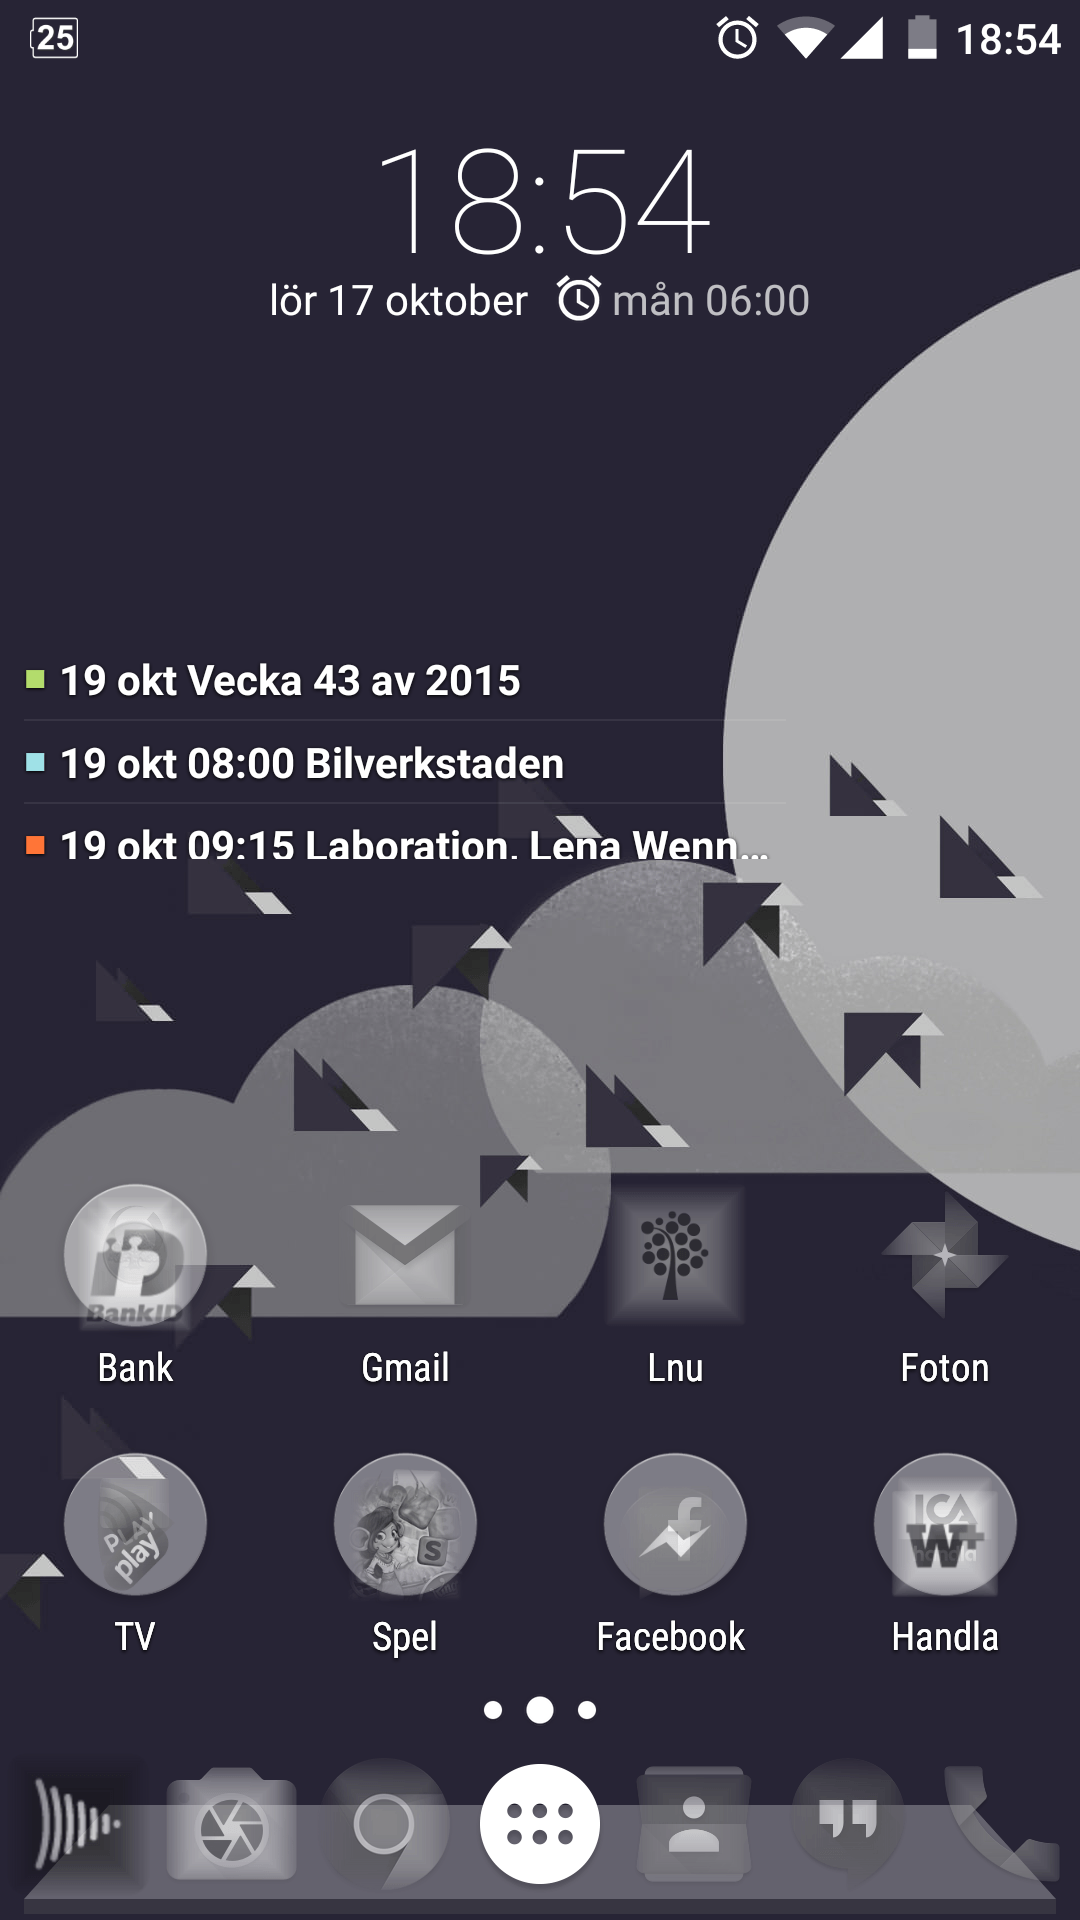 Screenshot_2015-10-17-18-54-02.png